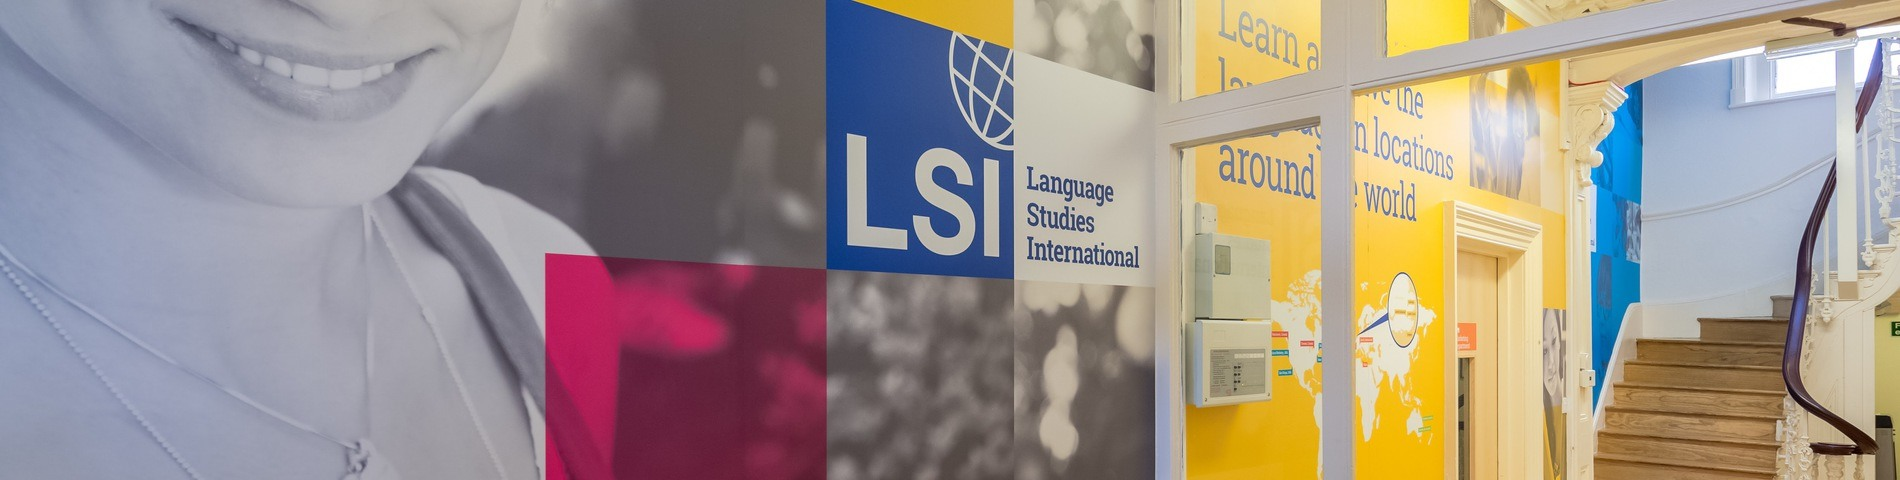 LSI - Language Studies International - Hampstead picture 1